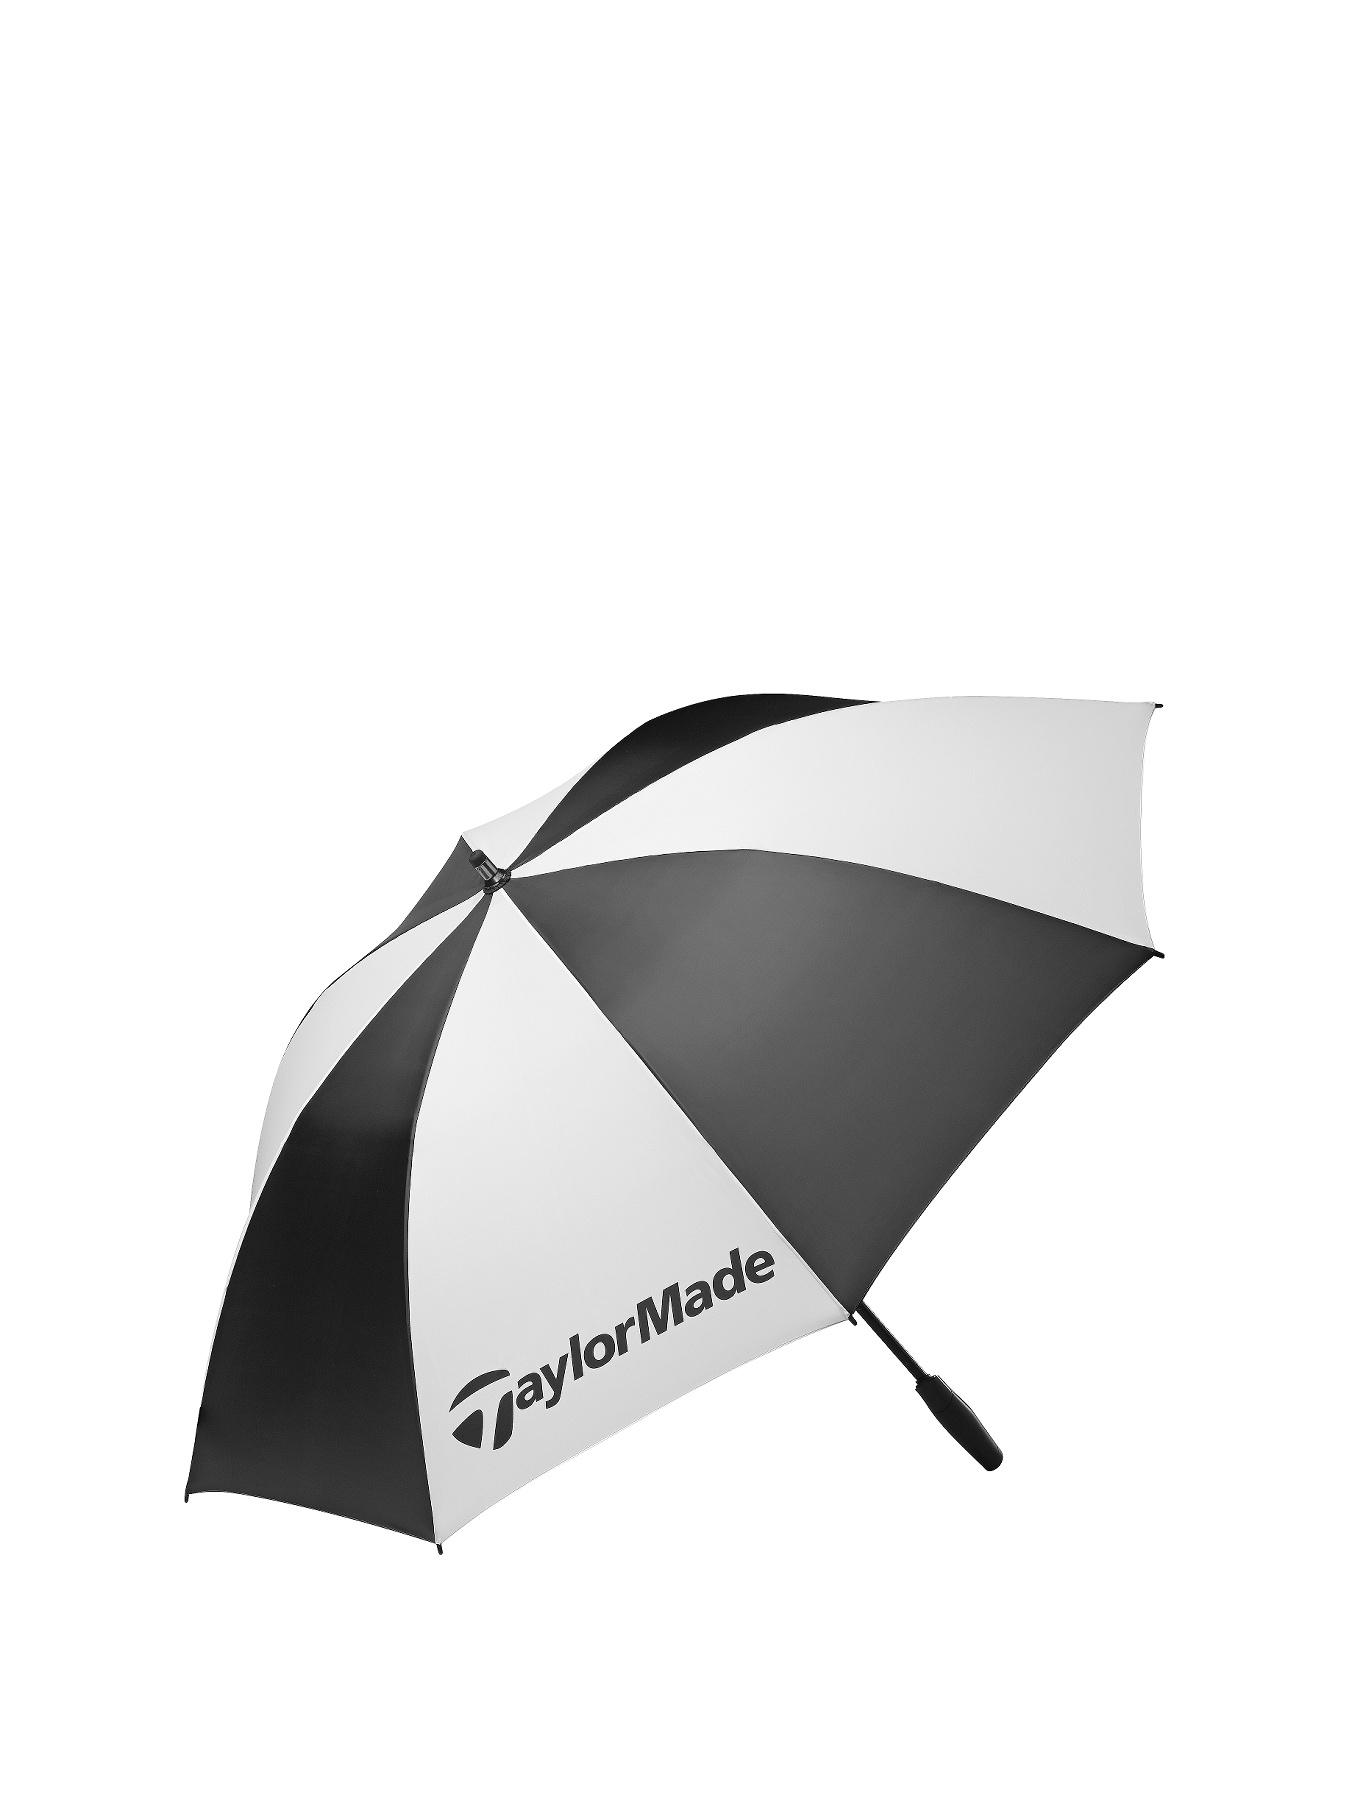 TAYLORMADE Single Canopy 62 Umbrella - Black/White